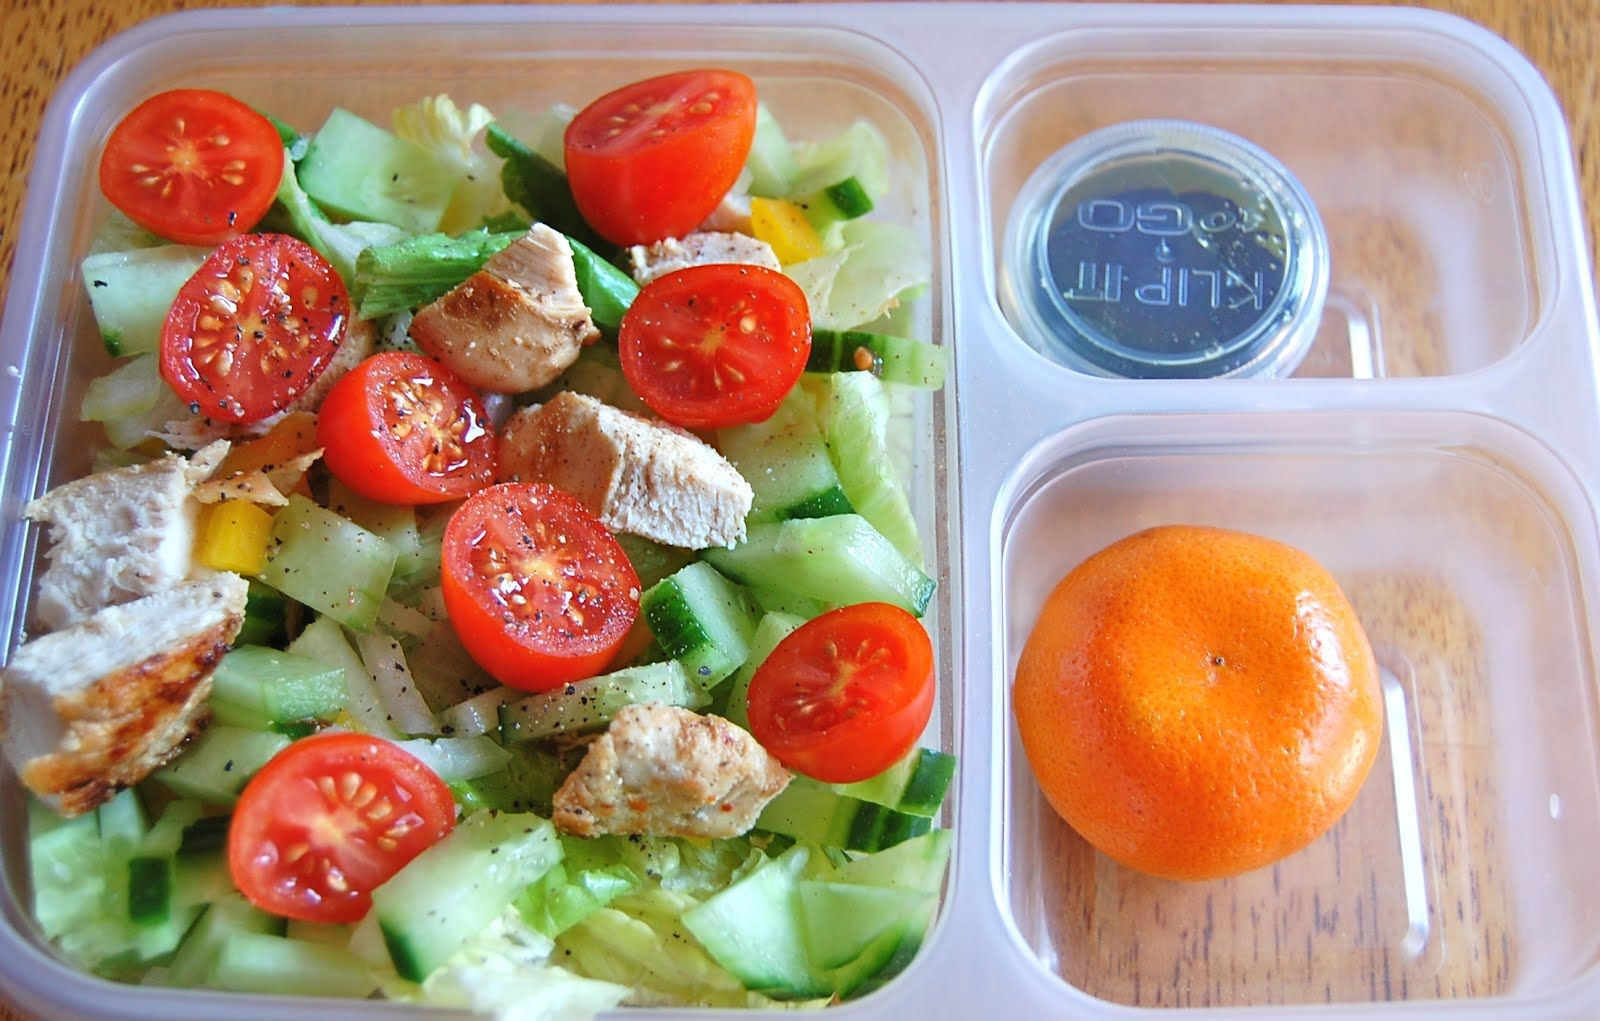 This girl has awesome tips on eating clean and staying